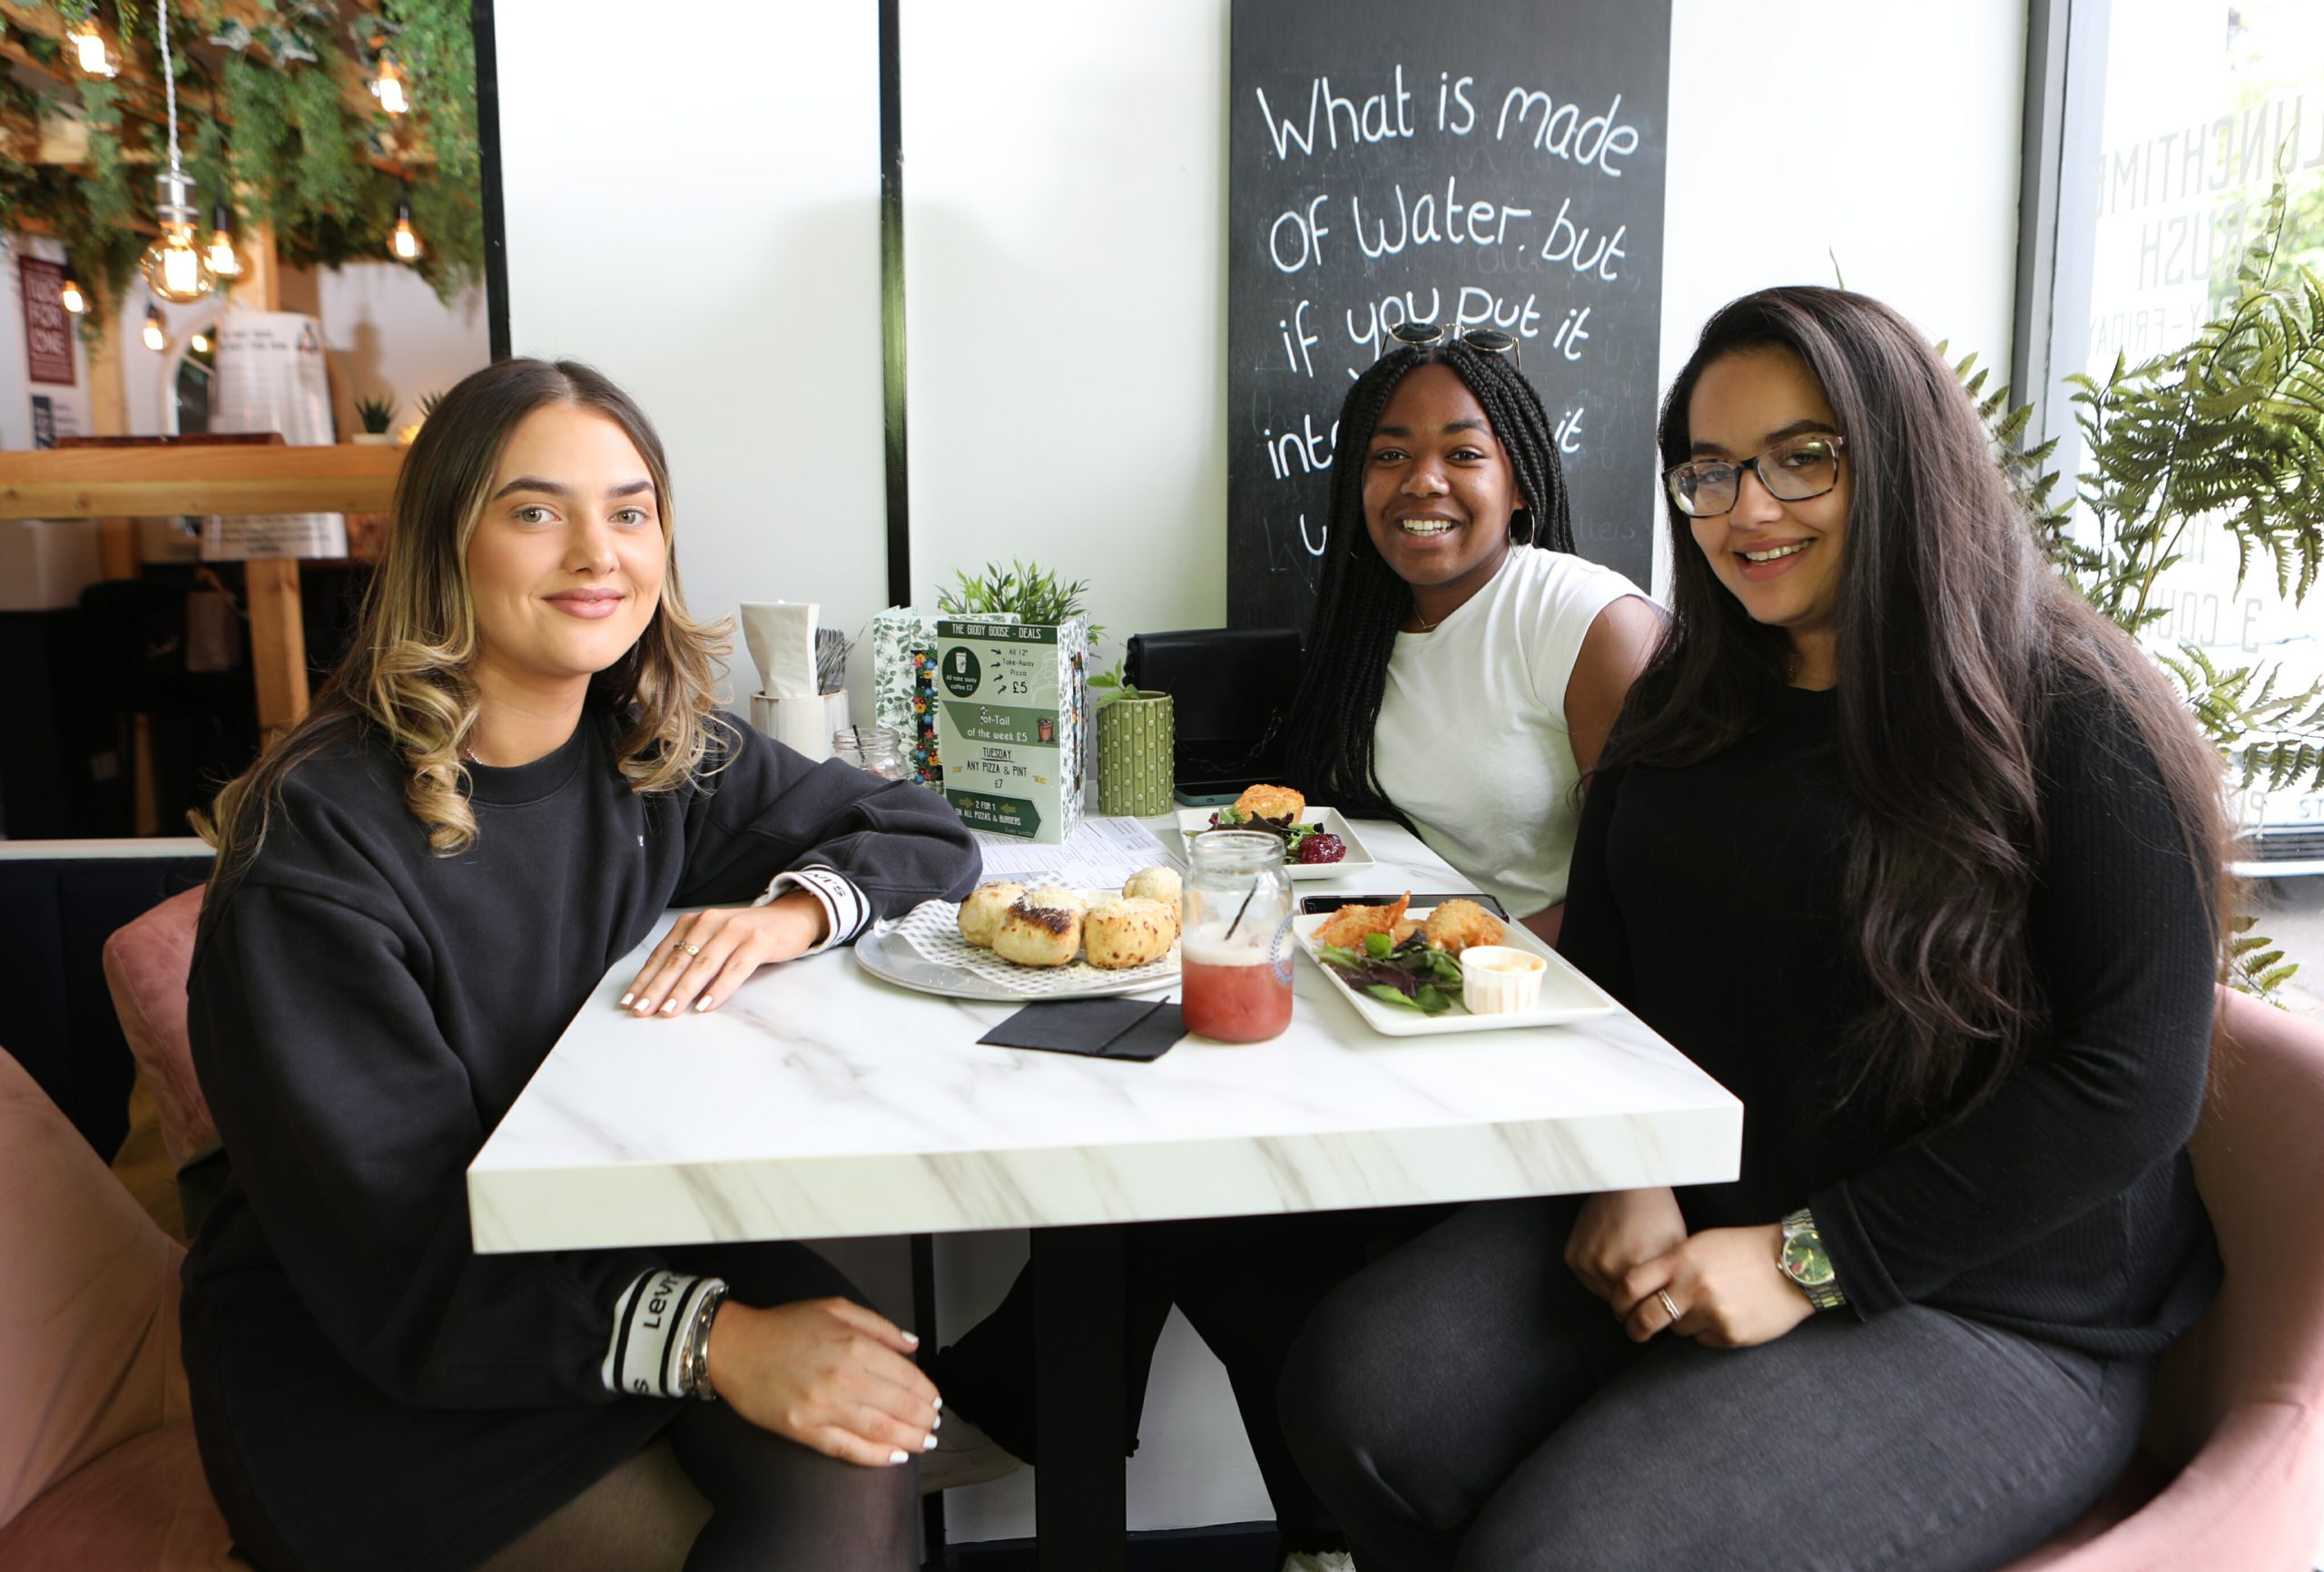 Courtney Buchan, Lauren Banks and Lara Laayouni, all aged 21, enjoy a meal at the Giddy Goose.